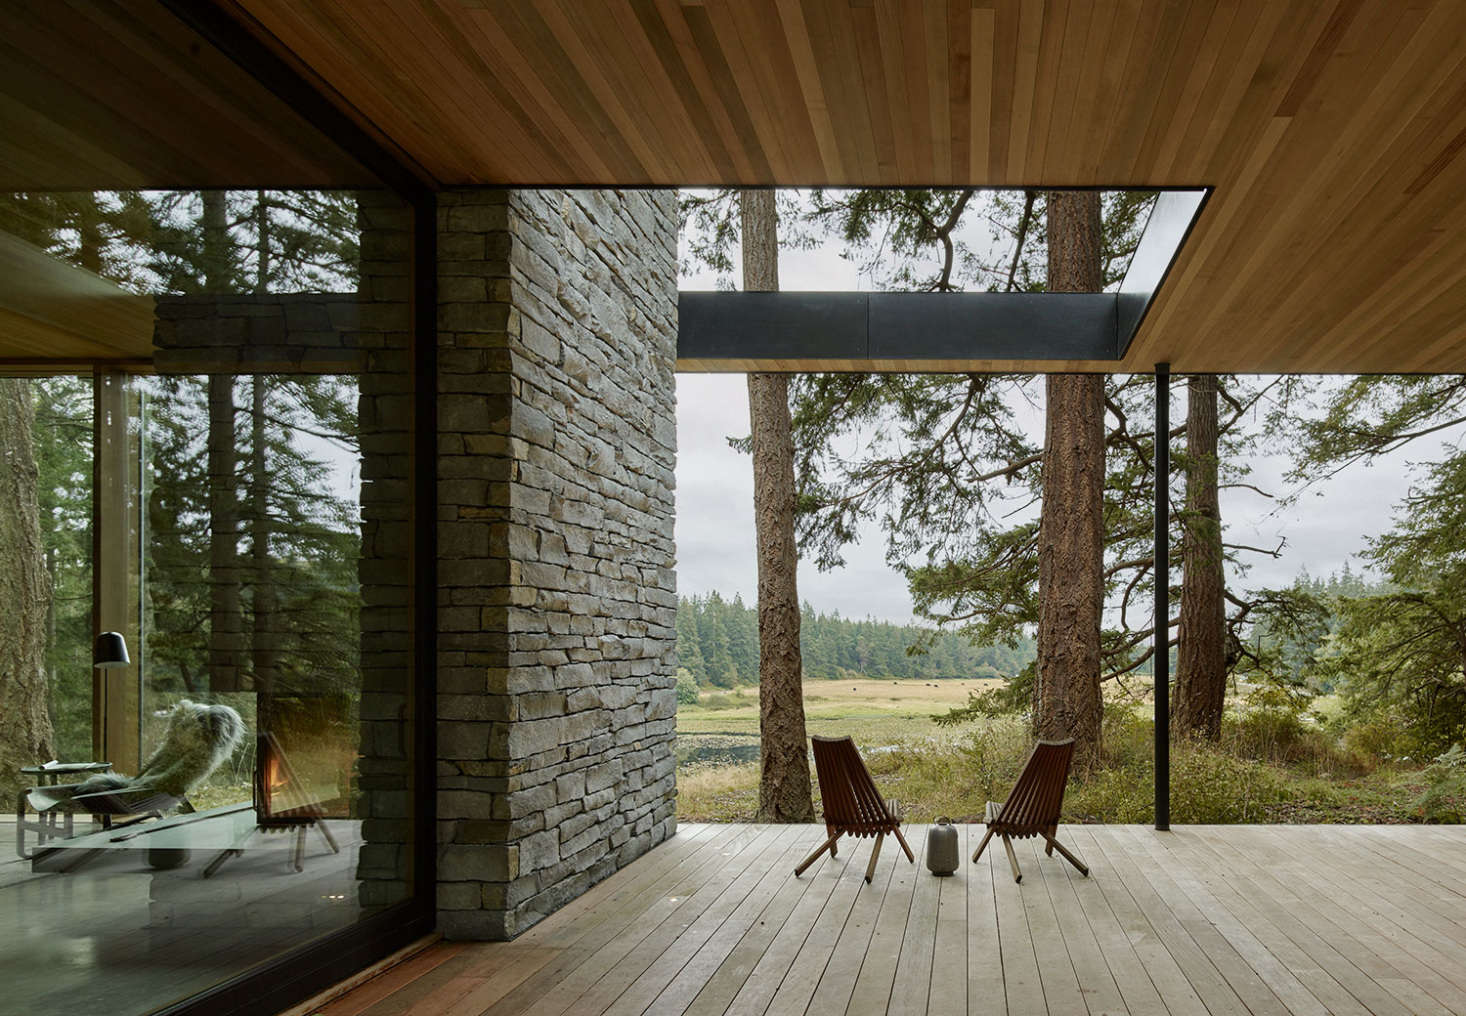 On the deck, the fireplace transitions into a stone wall. A cutout in the roof allows for more light.